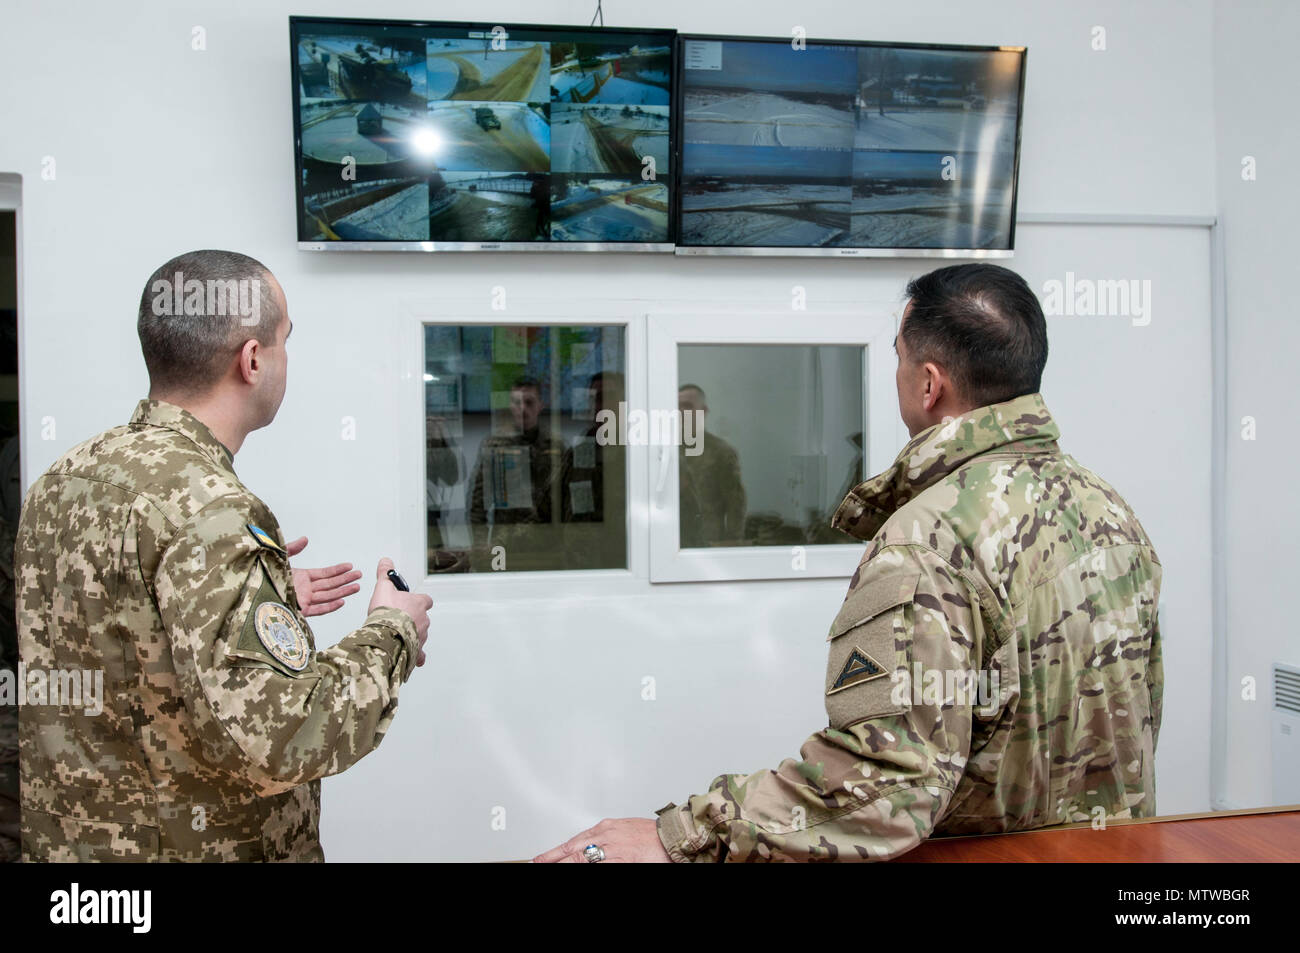 Ukrainian army Maj. Oleg Meder, a range operations officer for the International Peacekeeping and Security Center, near Yavoriv, Ukraine, shows U.S. Army Brig. Gen. Tony Aguto, commander for the 7th Army Training Center, the IPSC's cameras overlooking key checkpoints used to control the flow of traffic around the base's firing ranges on Jan. 28. (Photo by Sgt. Anthony Jones, 45th Infantry Brigade Combat Team) - Stock Image